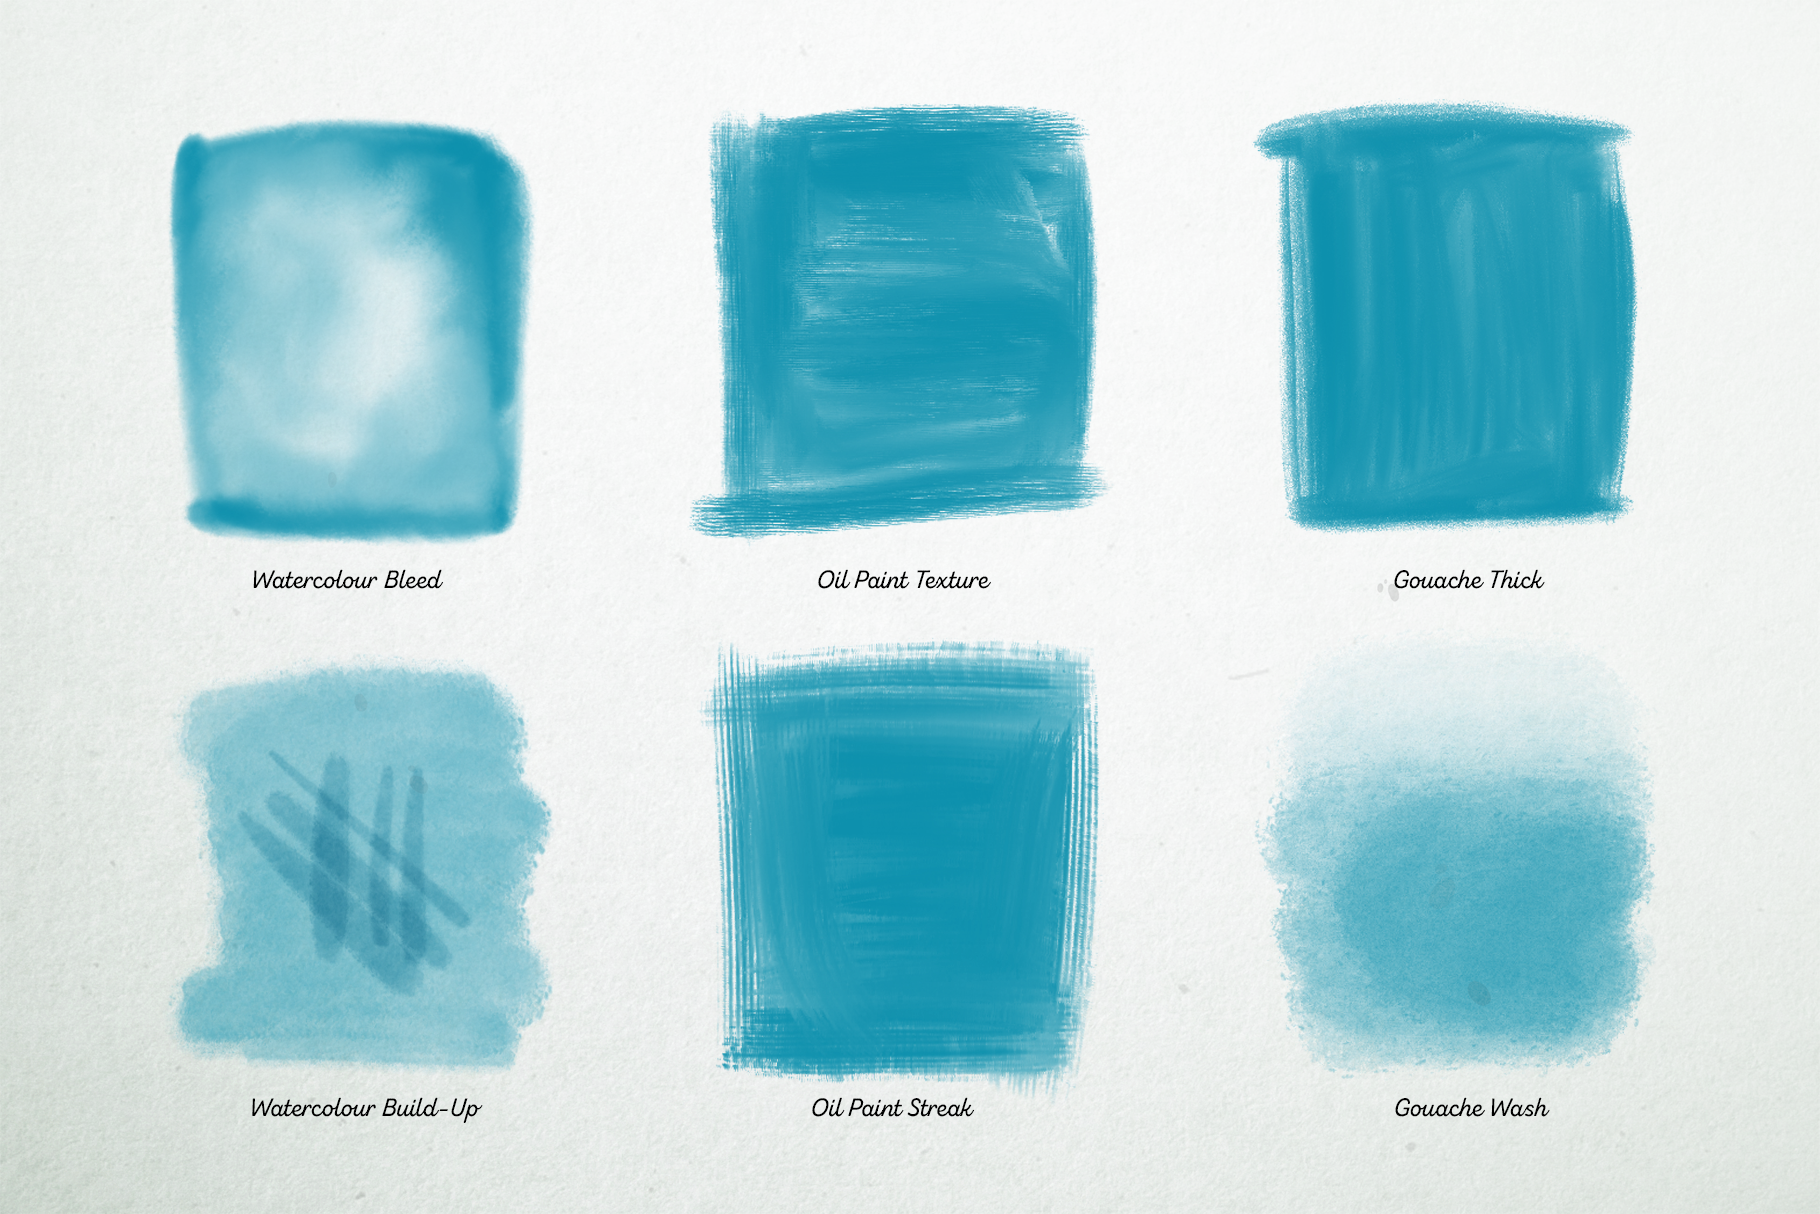 6 Exclusive Free Procreate Brushes By Brushup Brushes Dessin De Reference Dessin